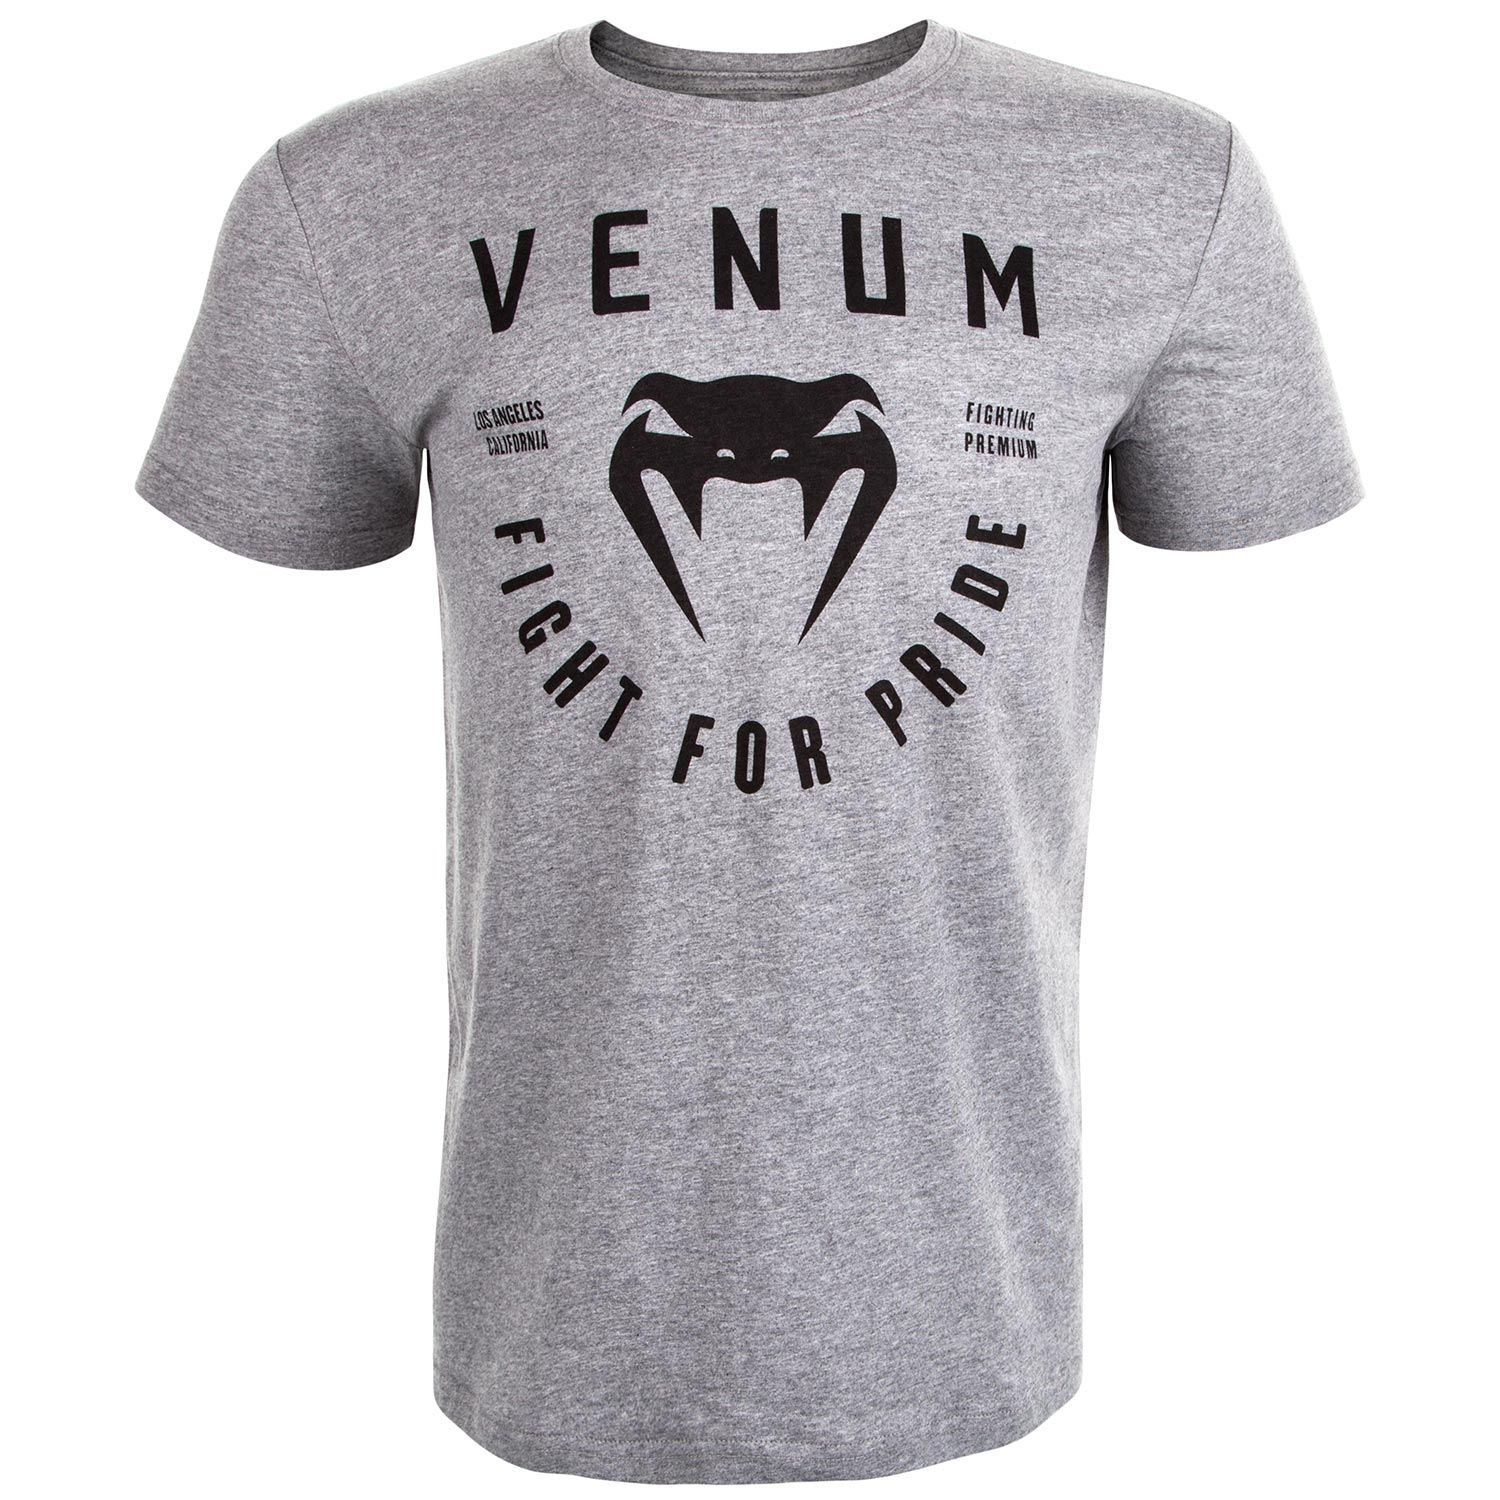 Venum Fight For Pride T-shirt - Heather Grey